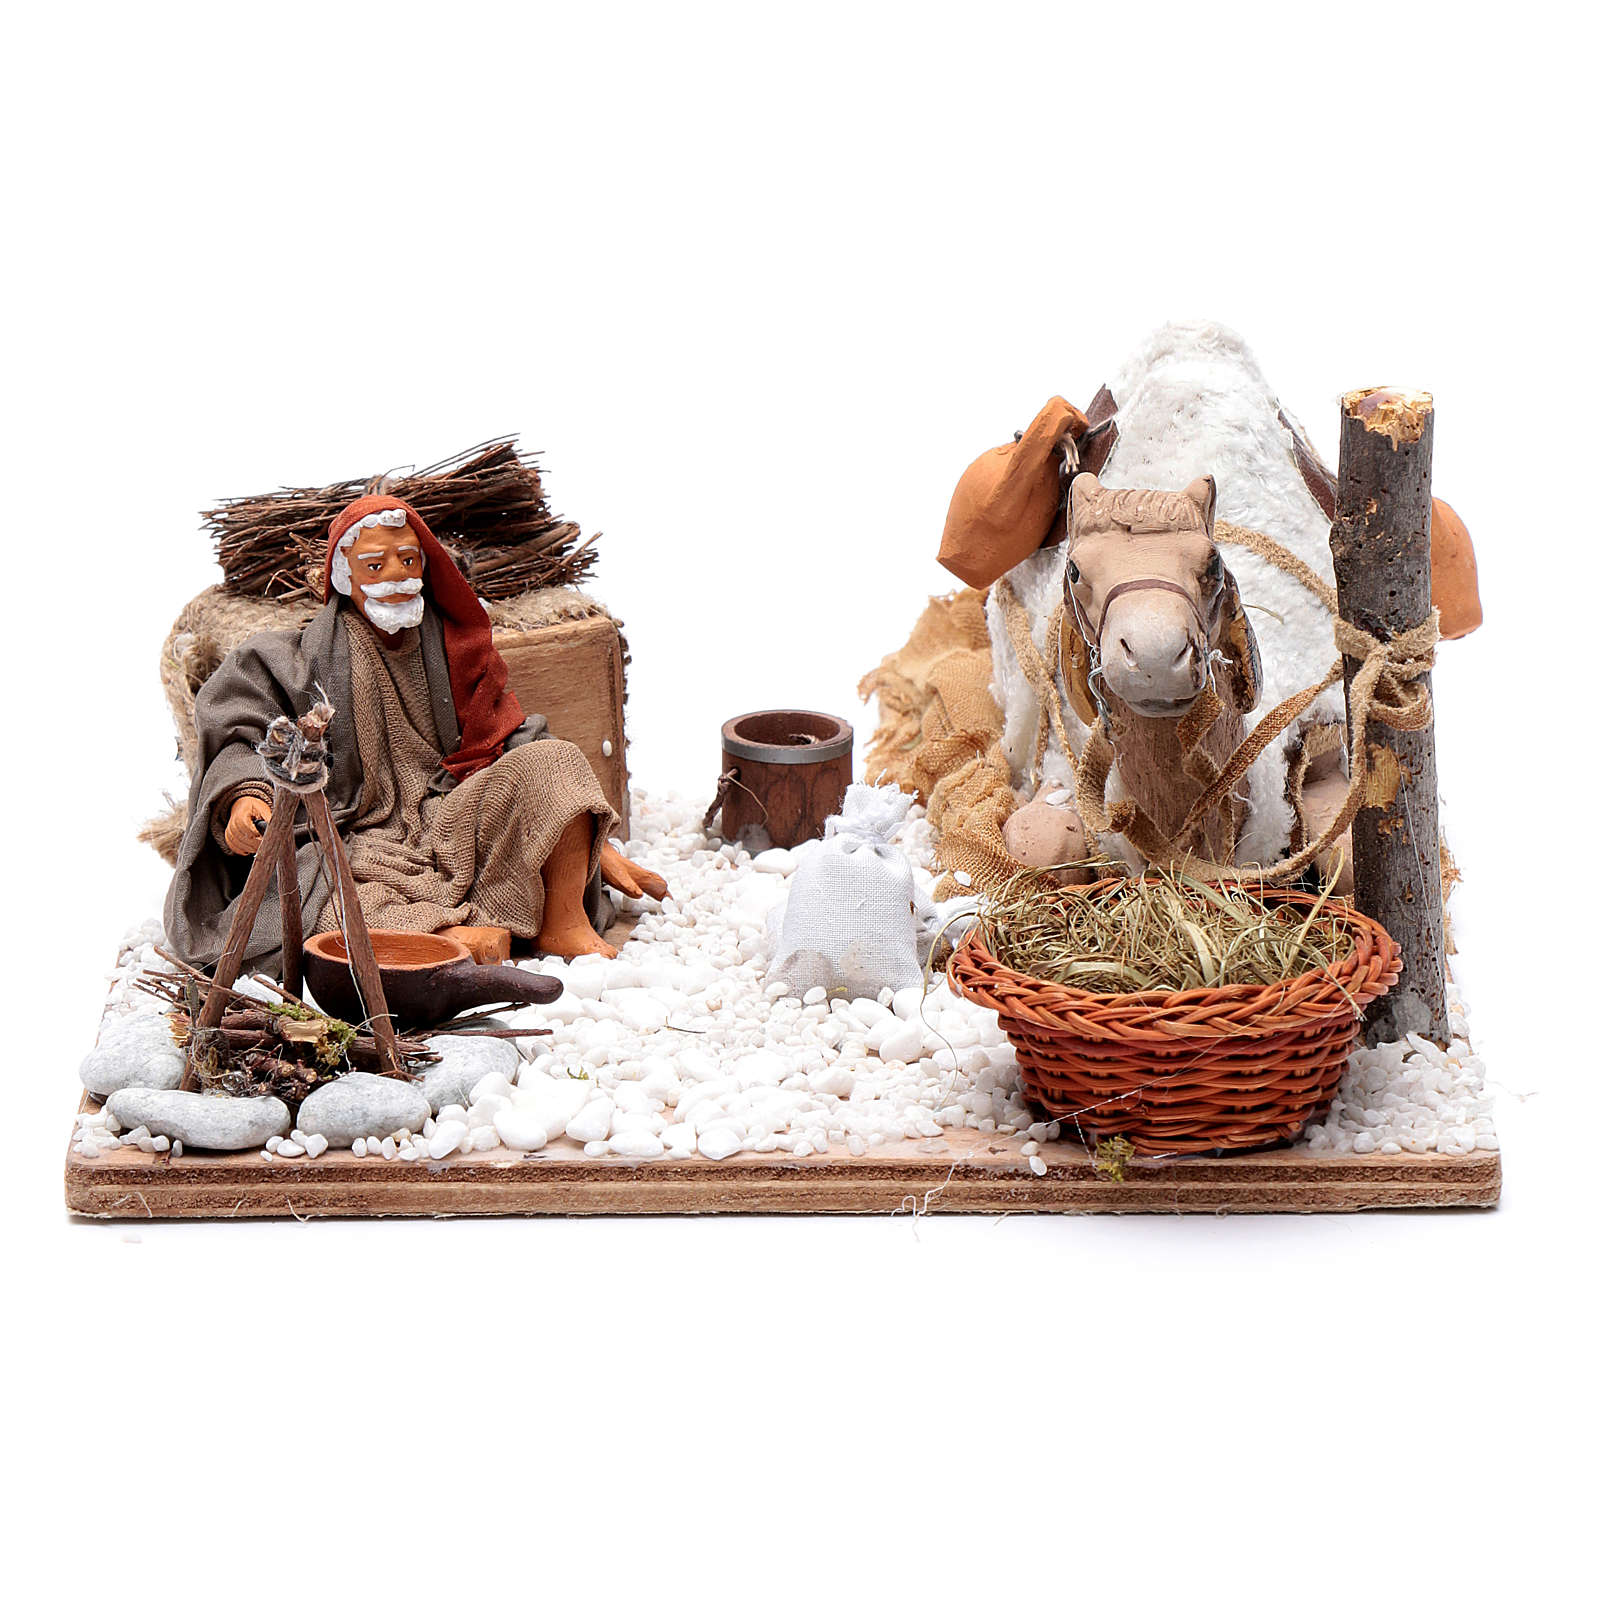 Man with camel, animated Neapolitan Nativity figurine 12cm 4